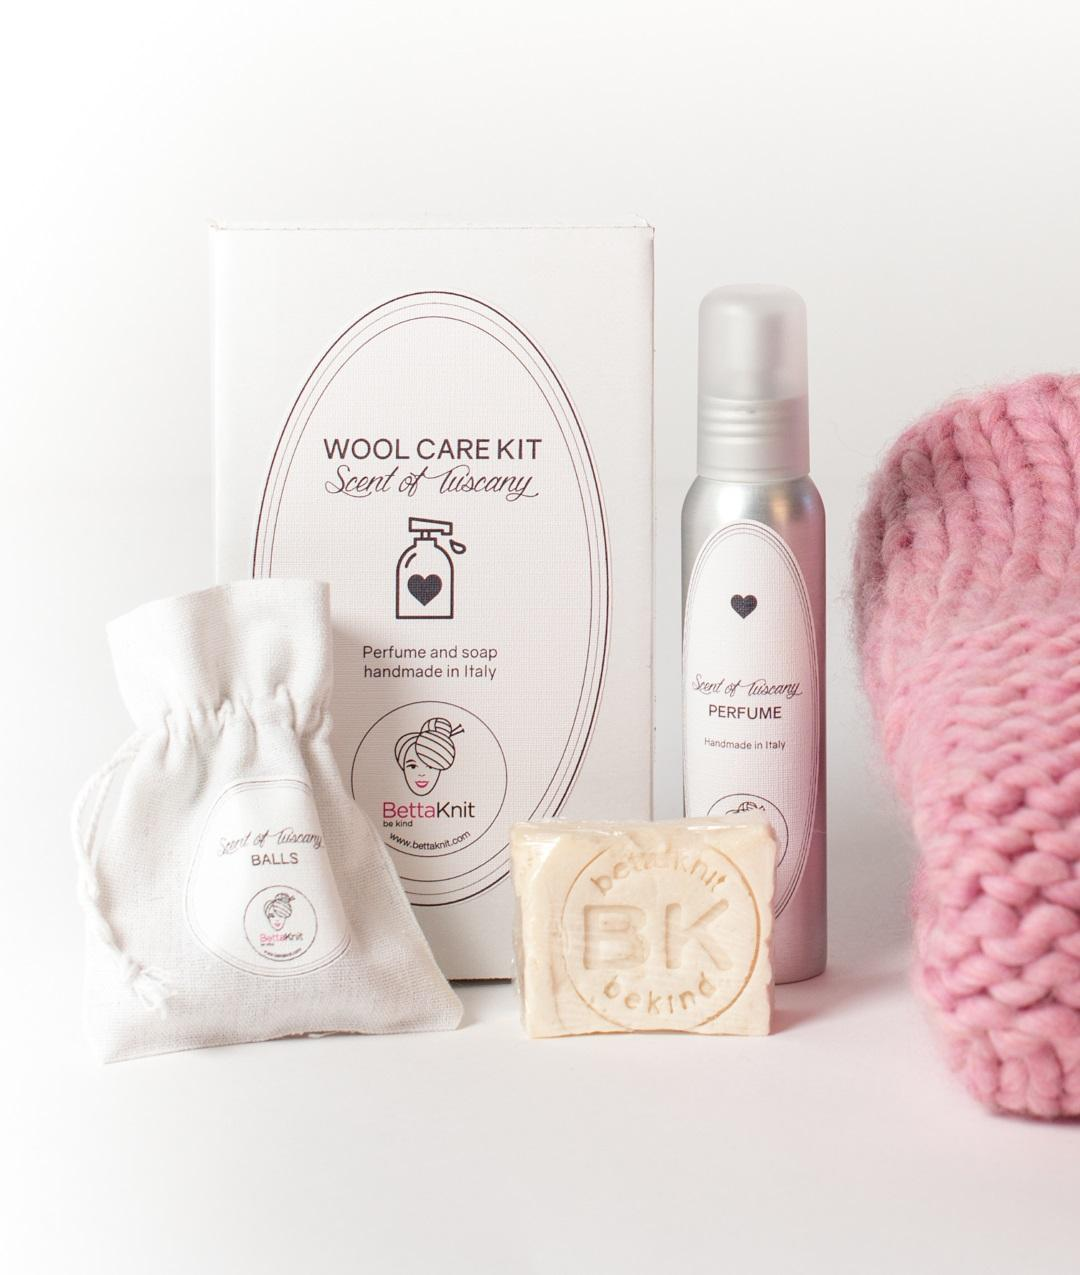 Kit Lavaggio lana  - Wool Care Kit - Scent of Tuscany - 1